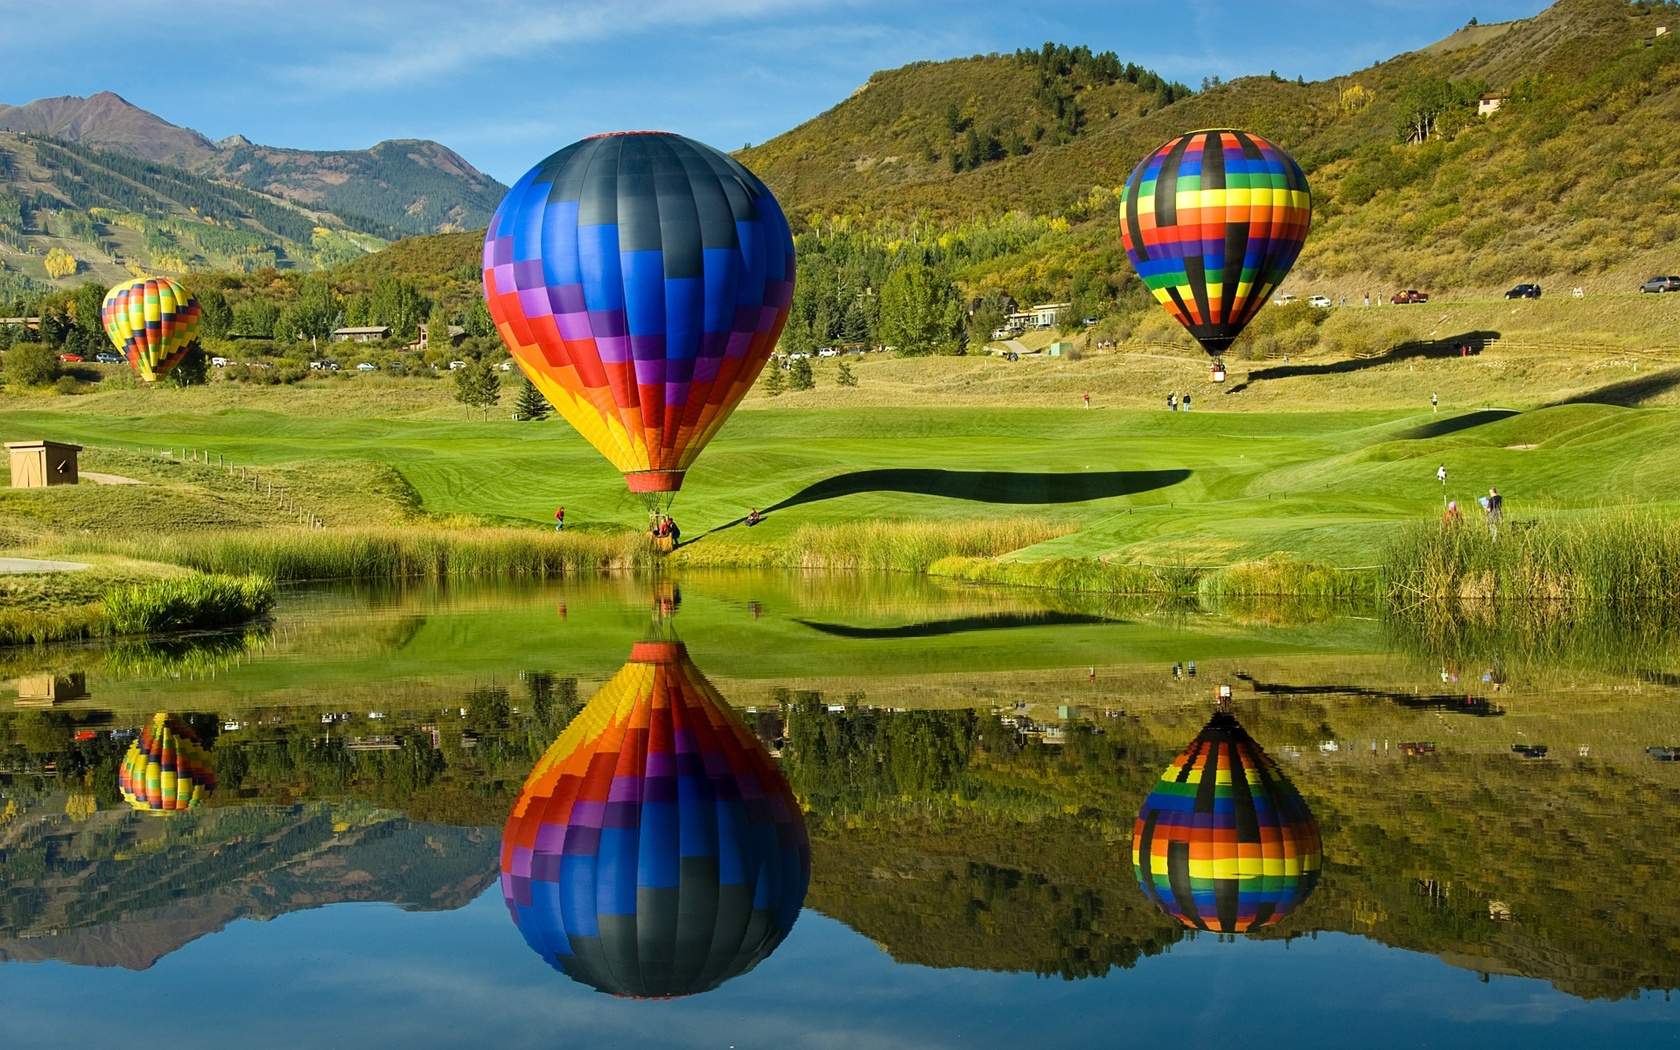 Download Colorful hot air balloons on the field wallpaper 1680x1050